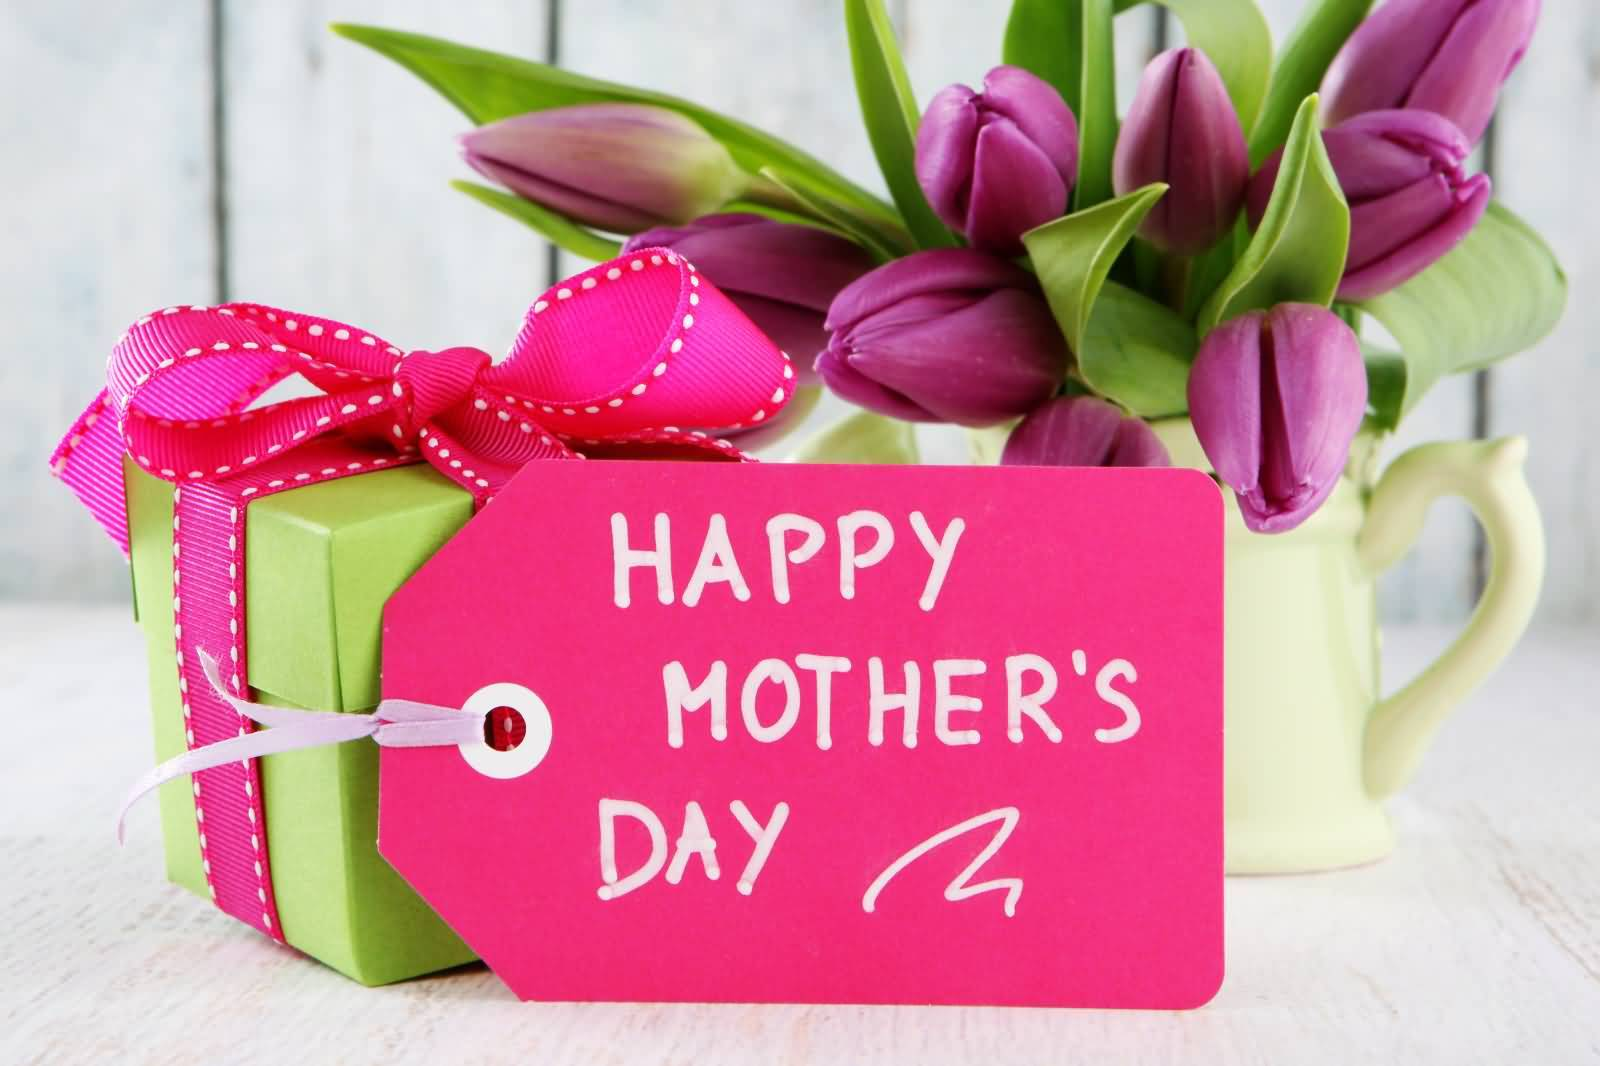 60 Beautiful Mother's Day 2017 Greeting Card Pictures